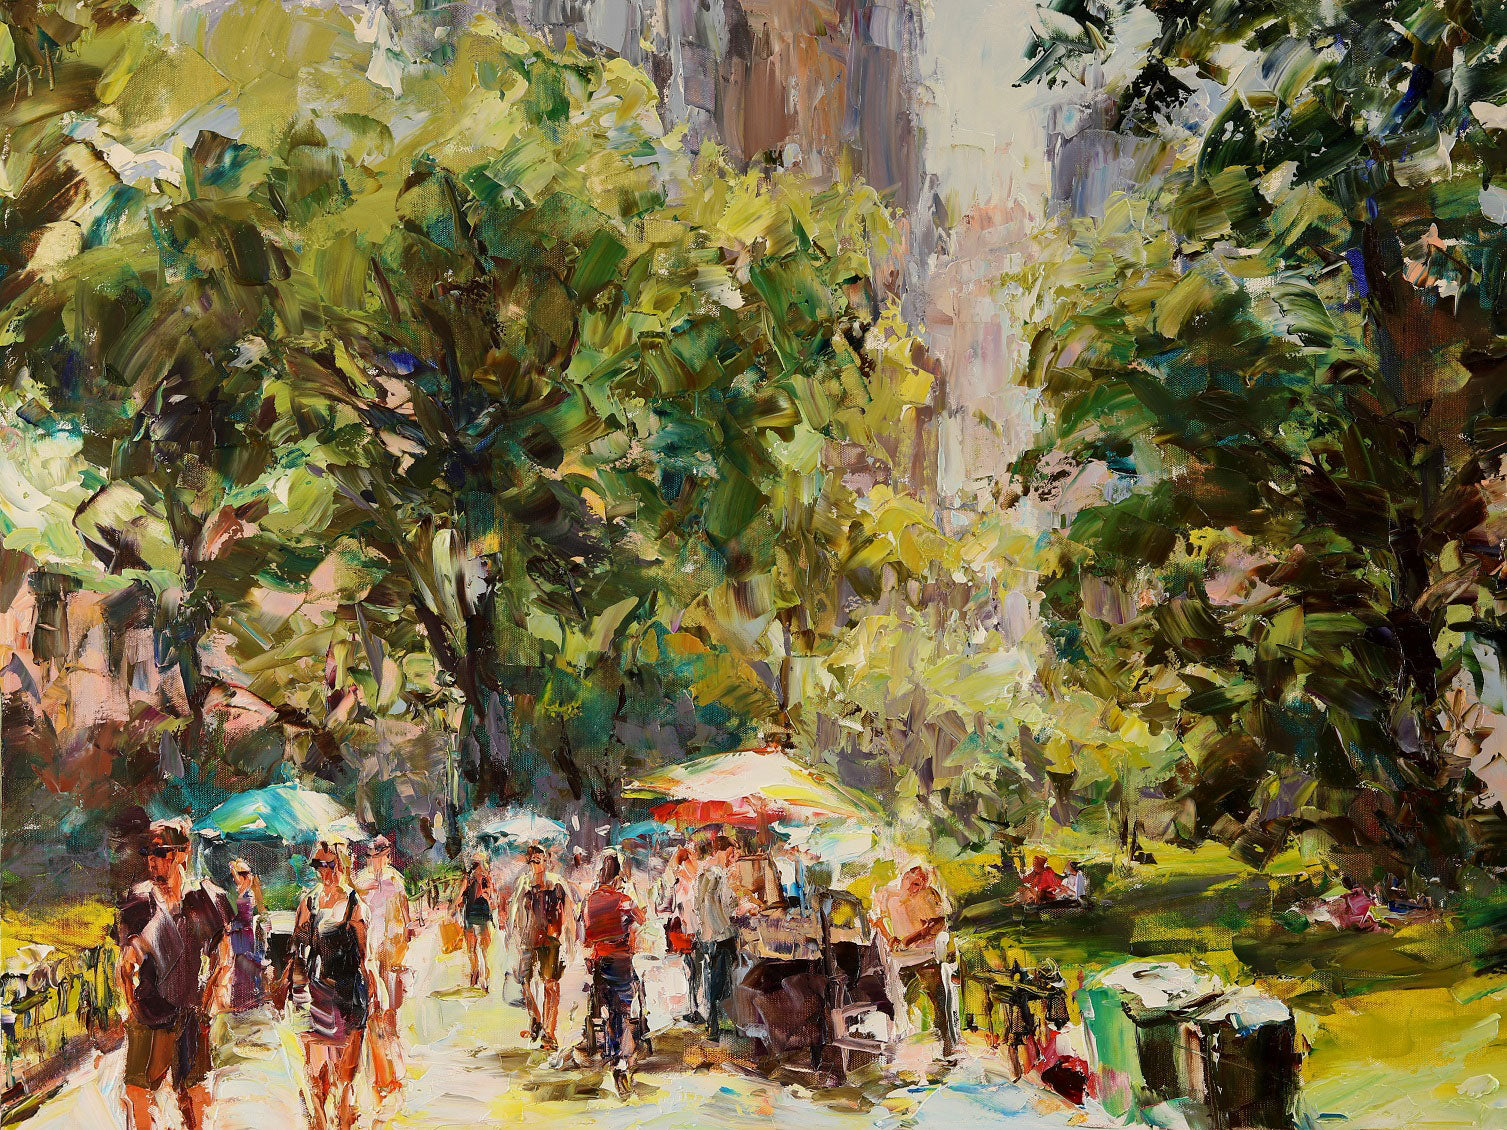 Summer in Central Park original oil painting by artist Lyudmila Agrich